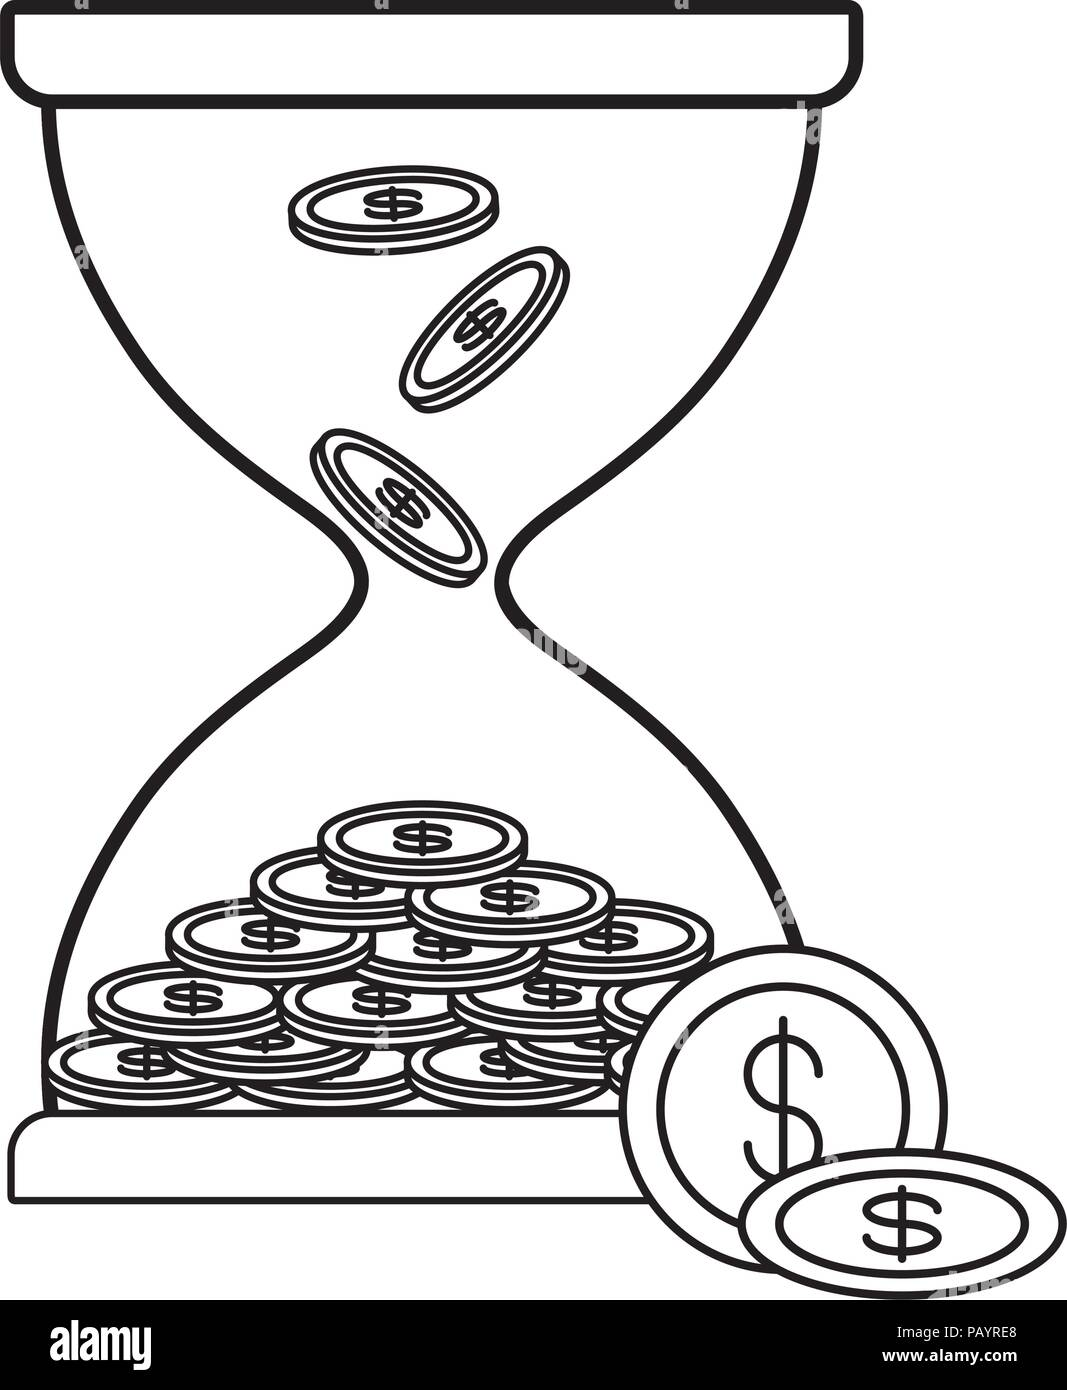 Hourglass moneybox with coins icon over white background, vector illustration - Stock Image